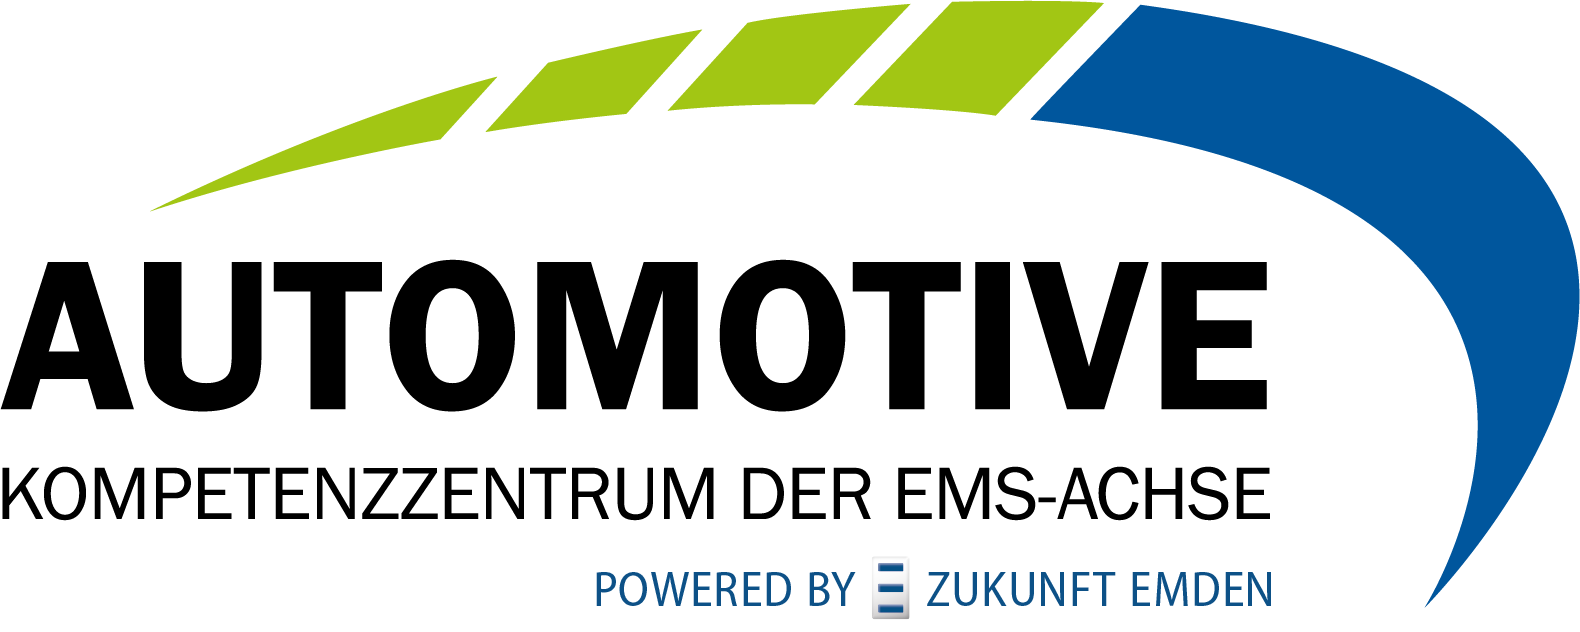 Logo Automotive Kompetenzzentrum der Ems-Achse